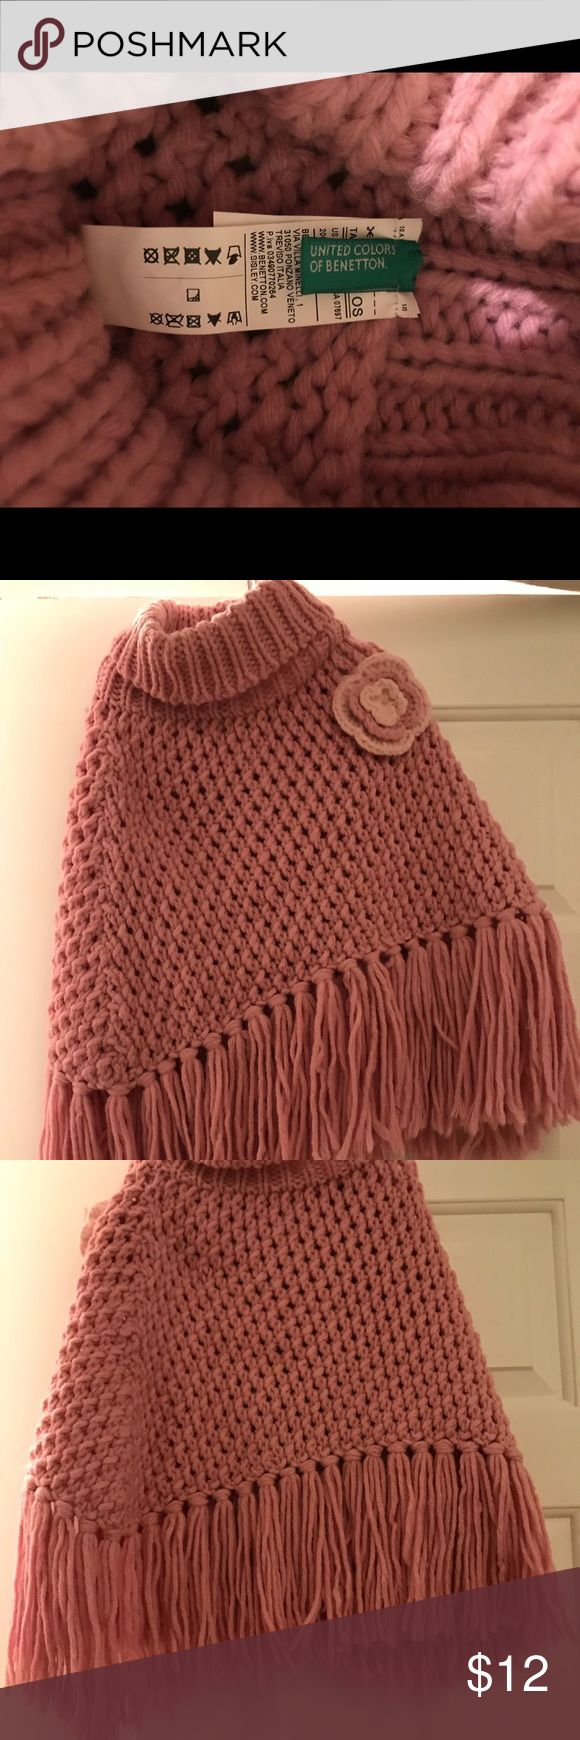 🧣Benetton knit poncho 🧣 Benetton Girls poncho knitted. Rose United Colors Of Benetton Other